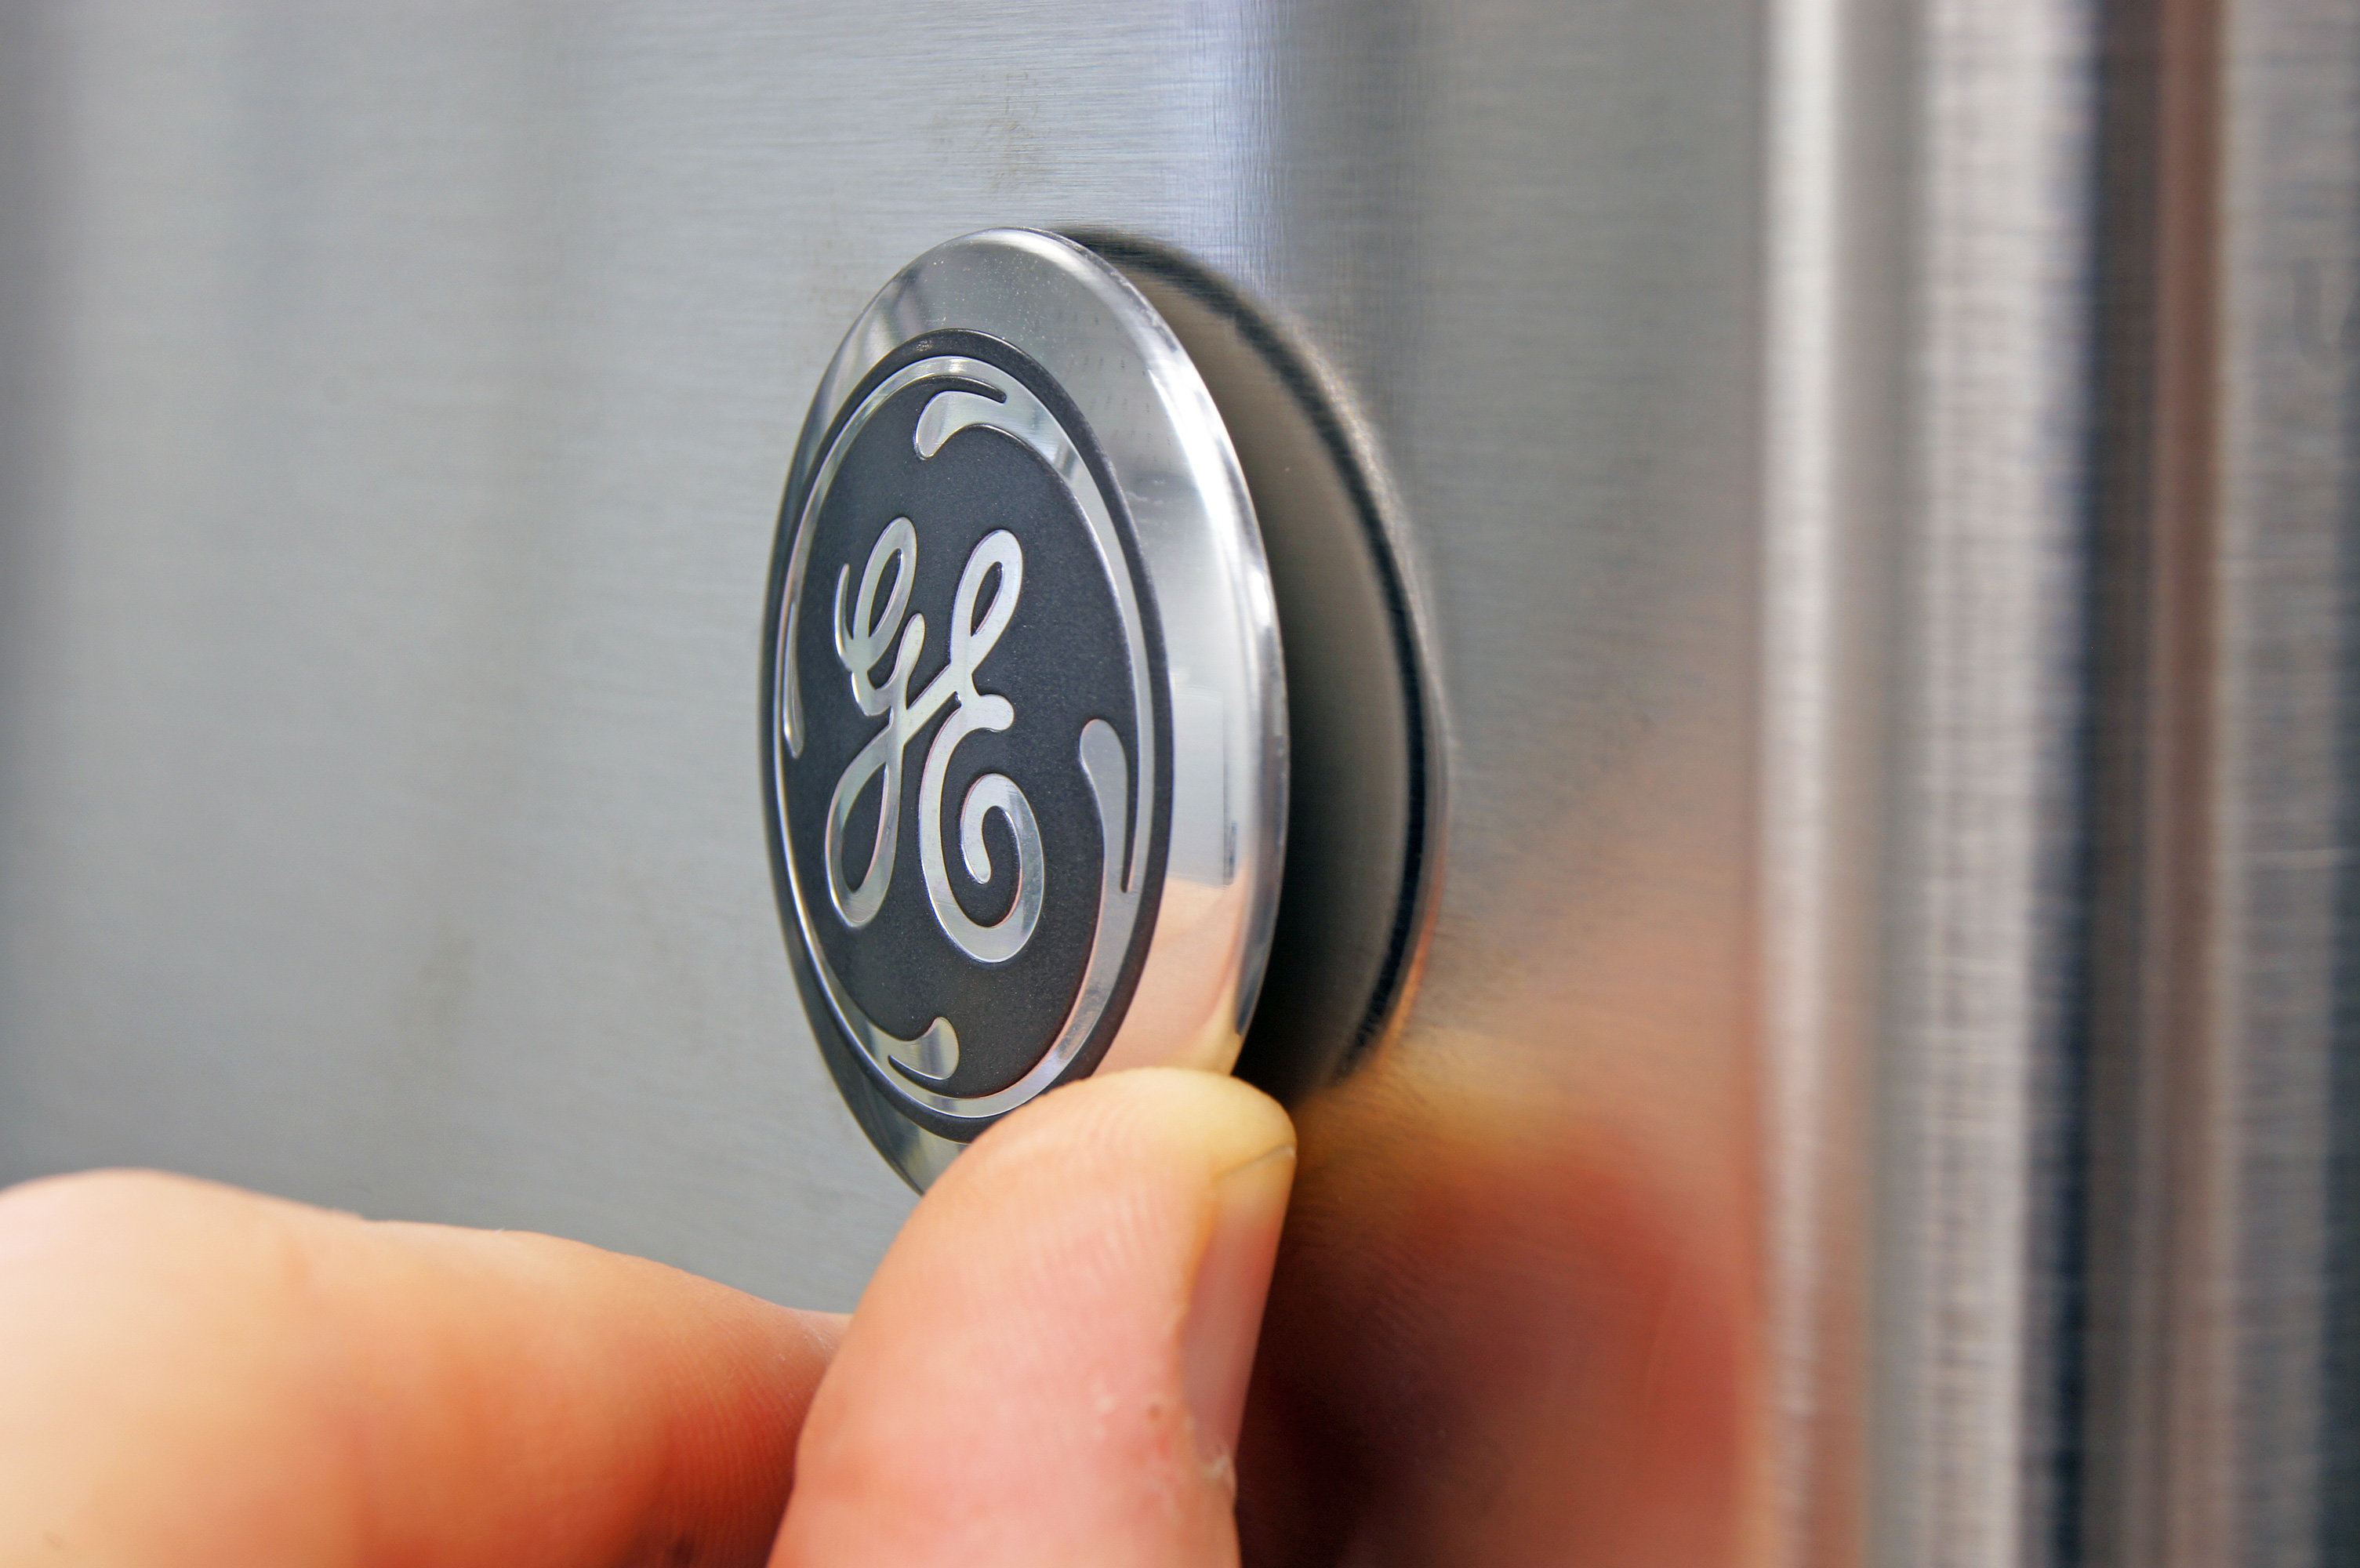 The GE GTE16GSHSS's doors are reversible, so you have to attach the GE logo yourself. Trouble is, it won't necessarily sit flush to the door.